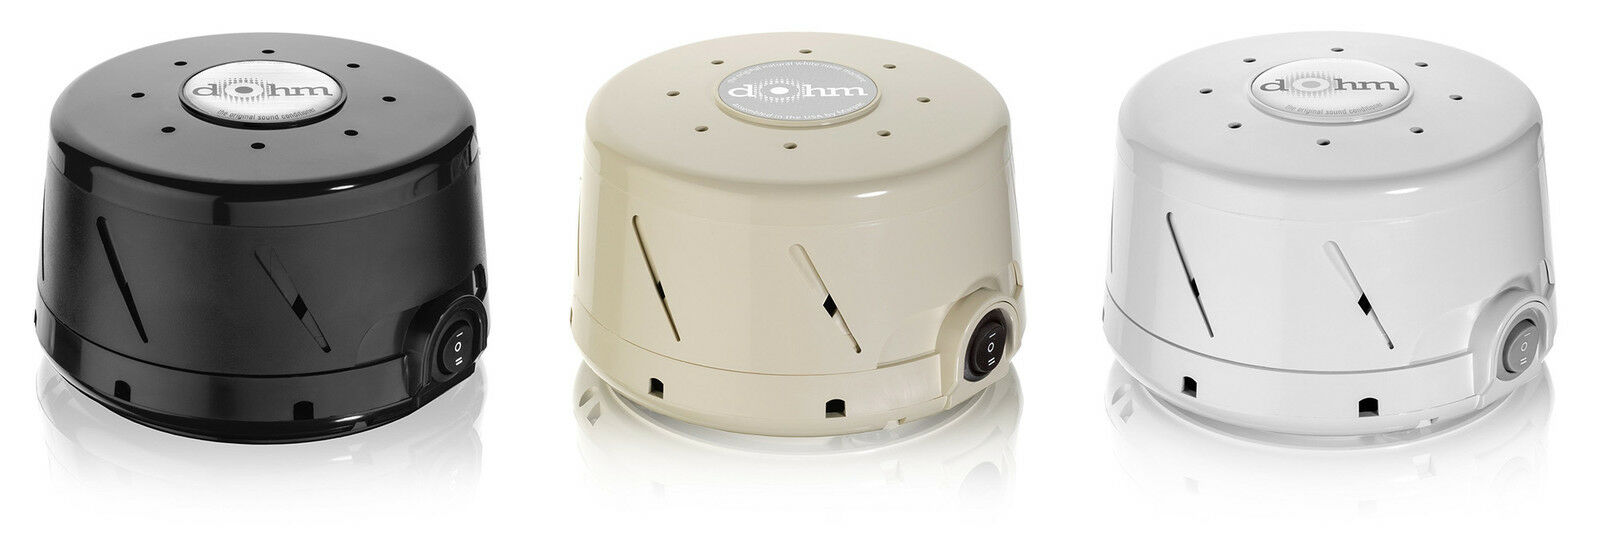 Image result for Marpac Dohm-DS